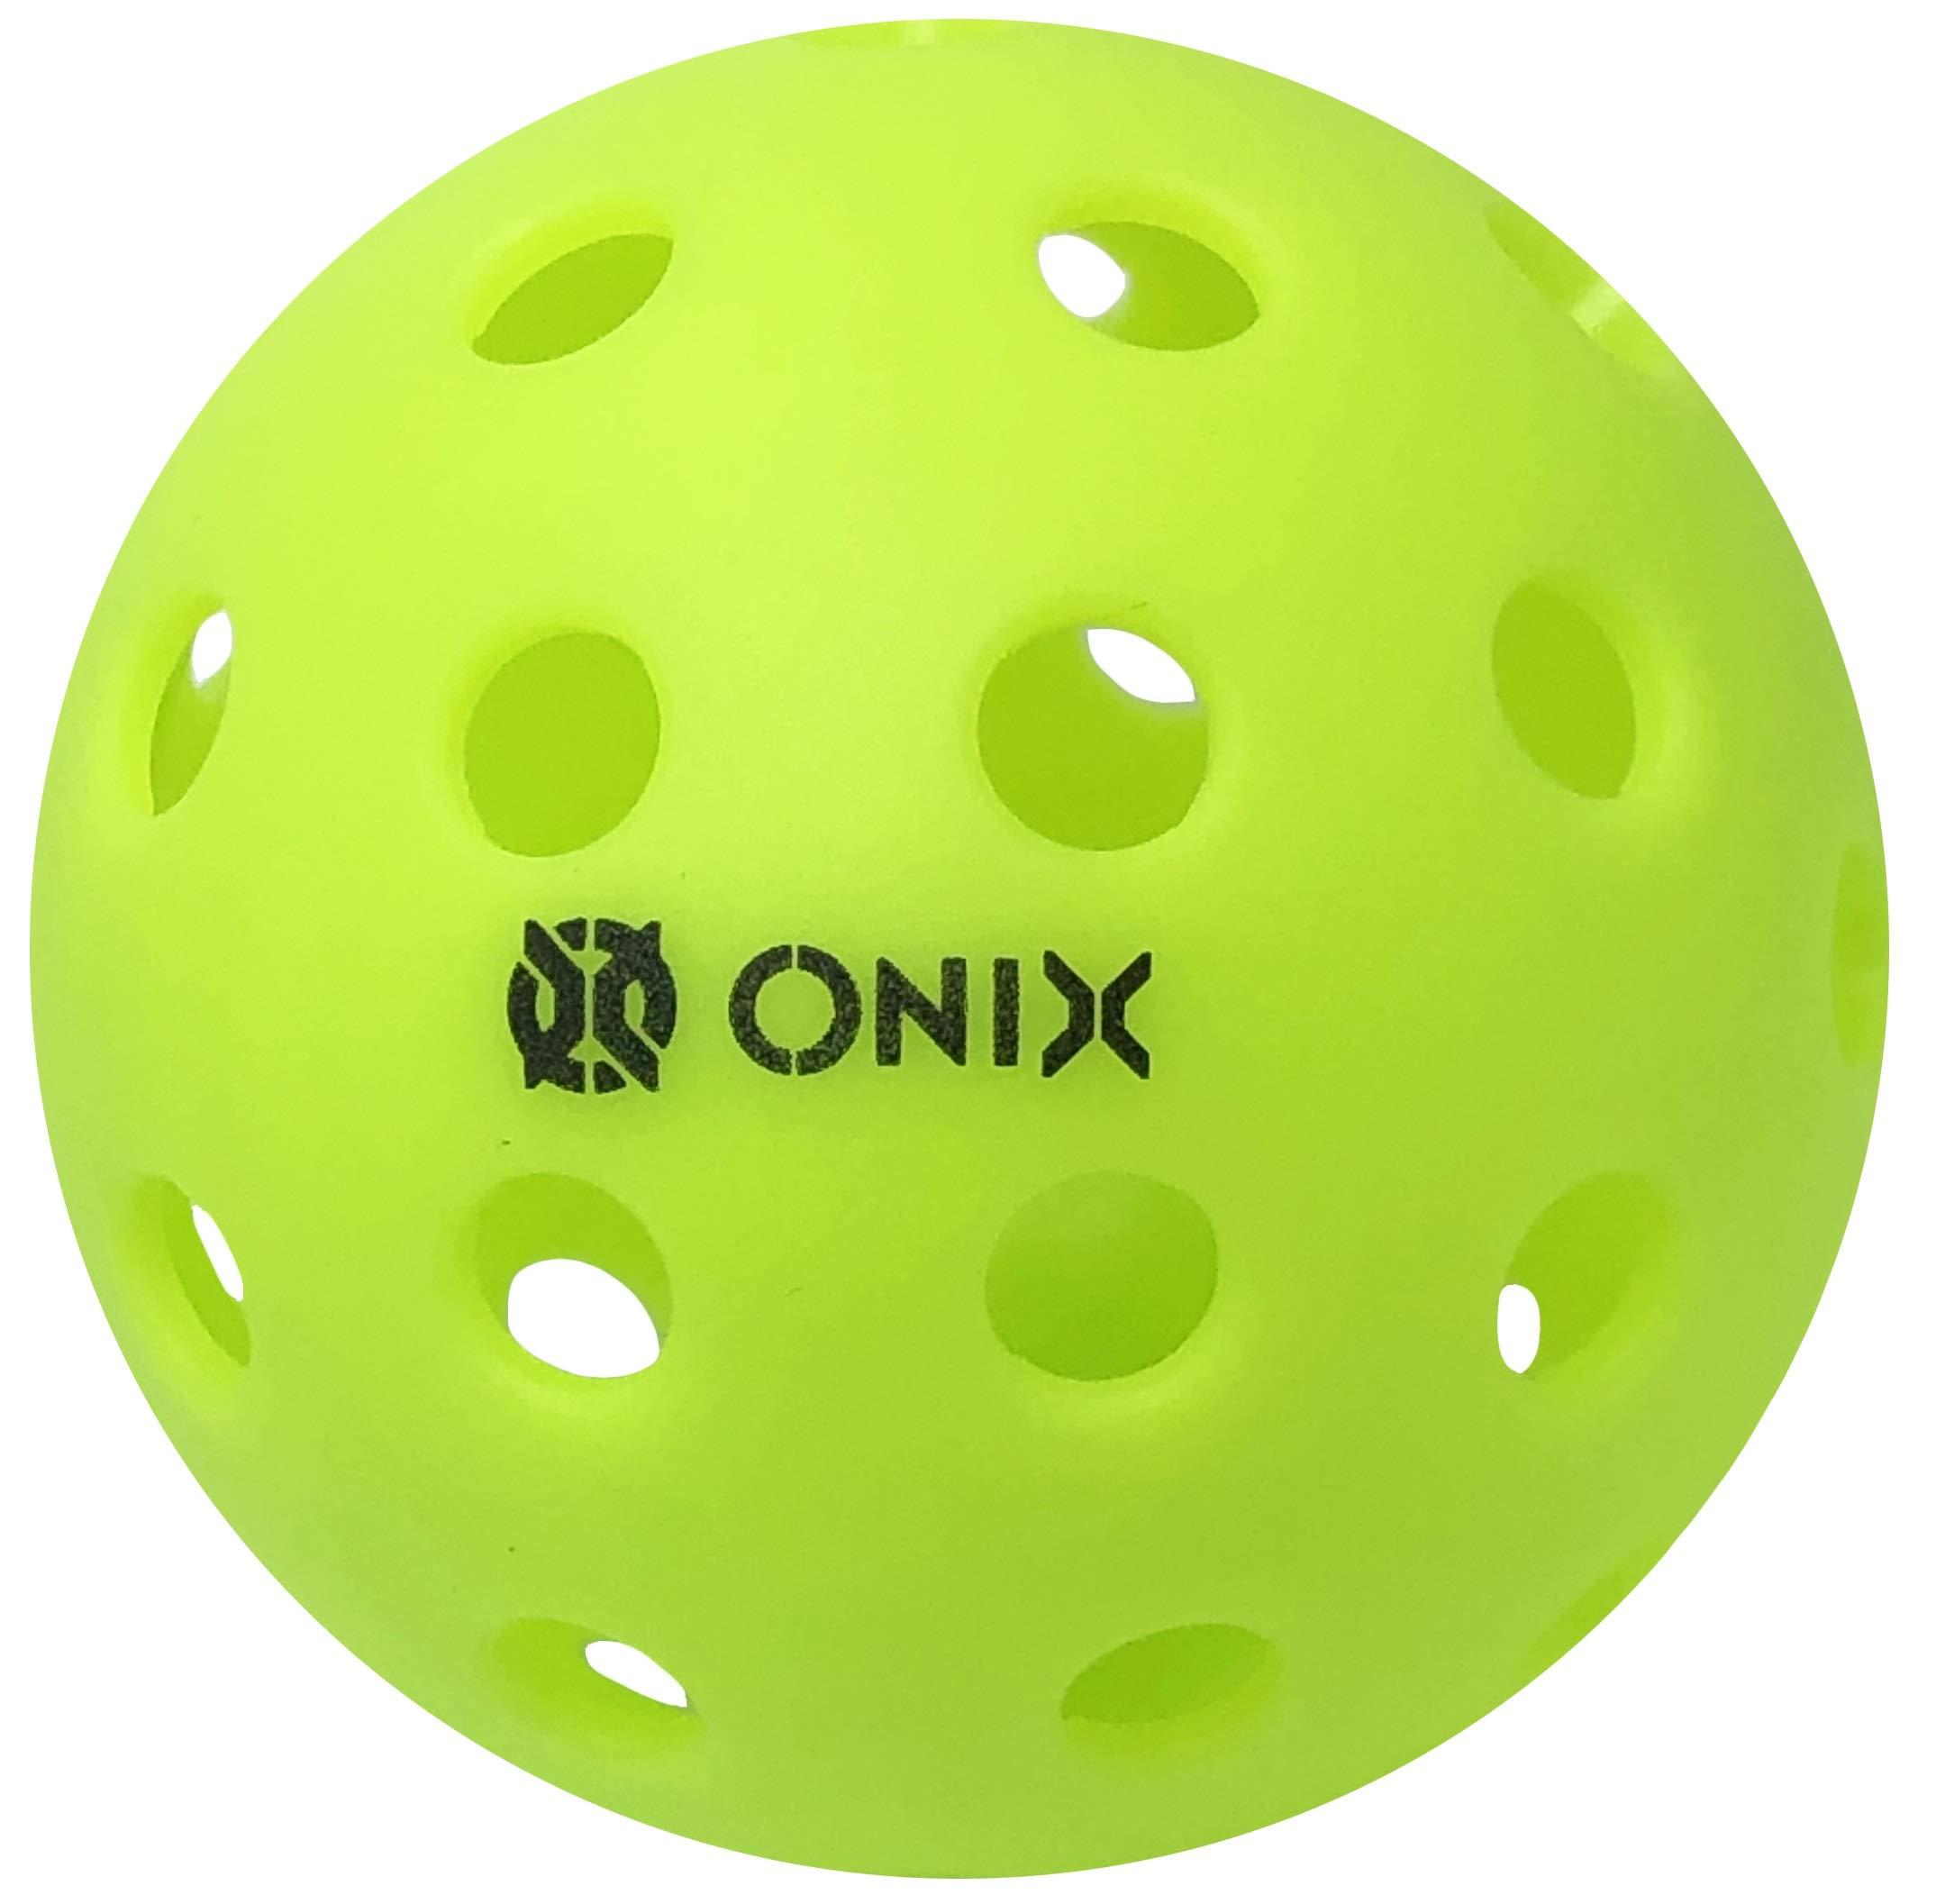 Onix Pure 2 Outdoor Pickleball Balls Specifically Designed and Optimized for Pickleball (6-Pack, Green) by Onix